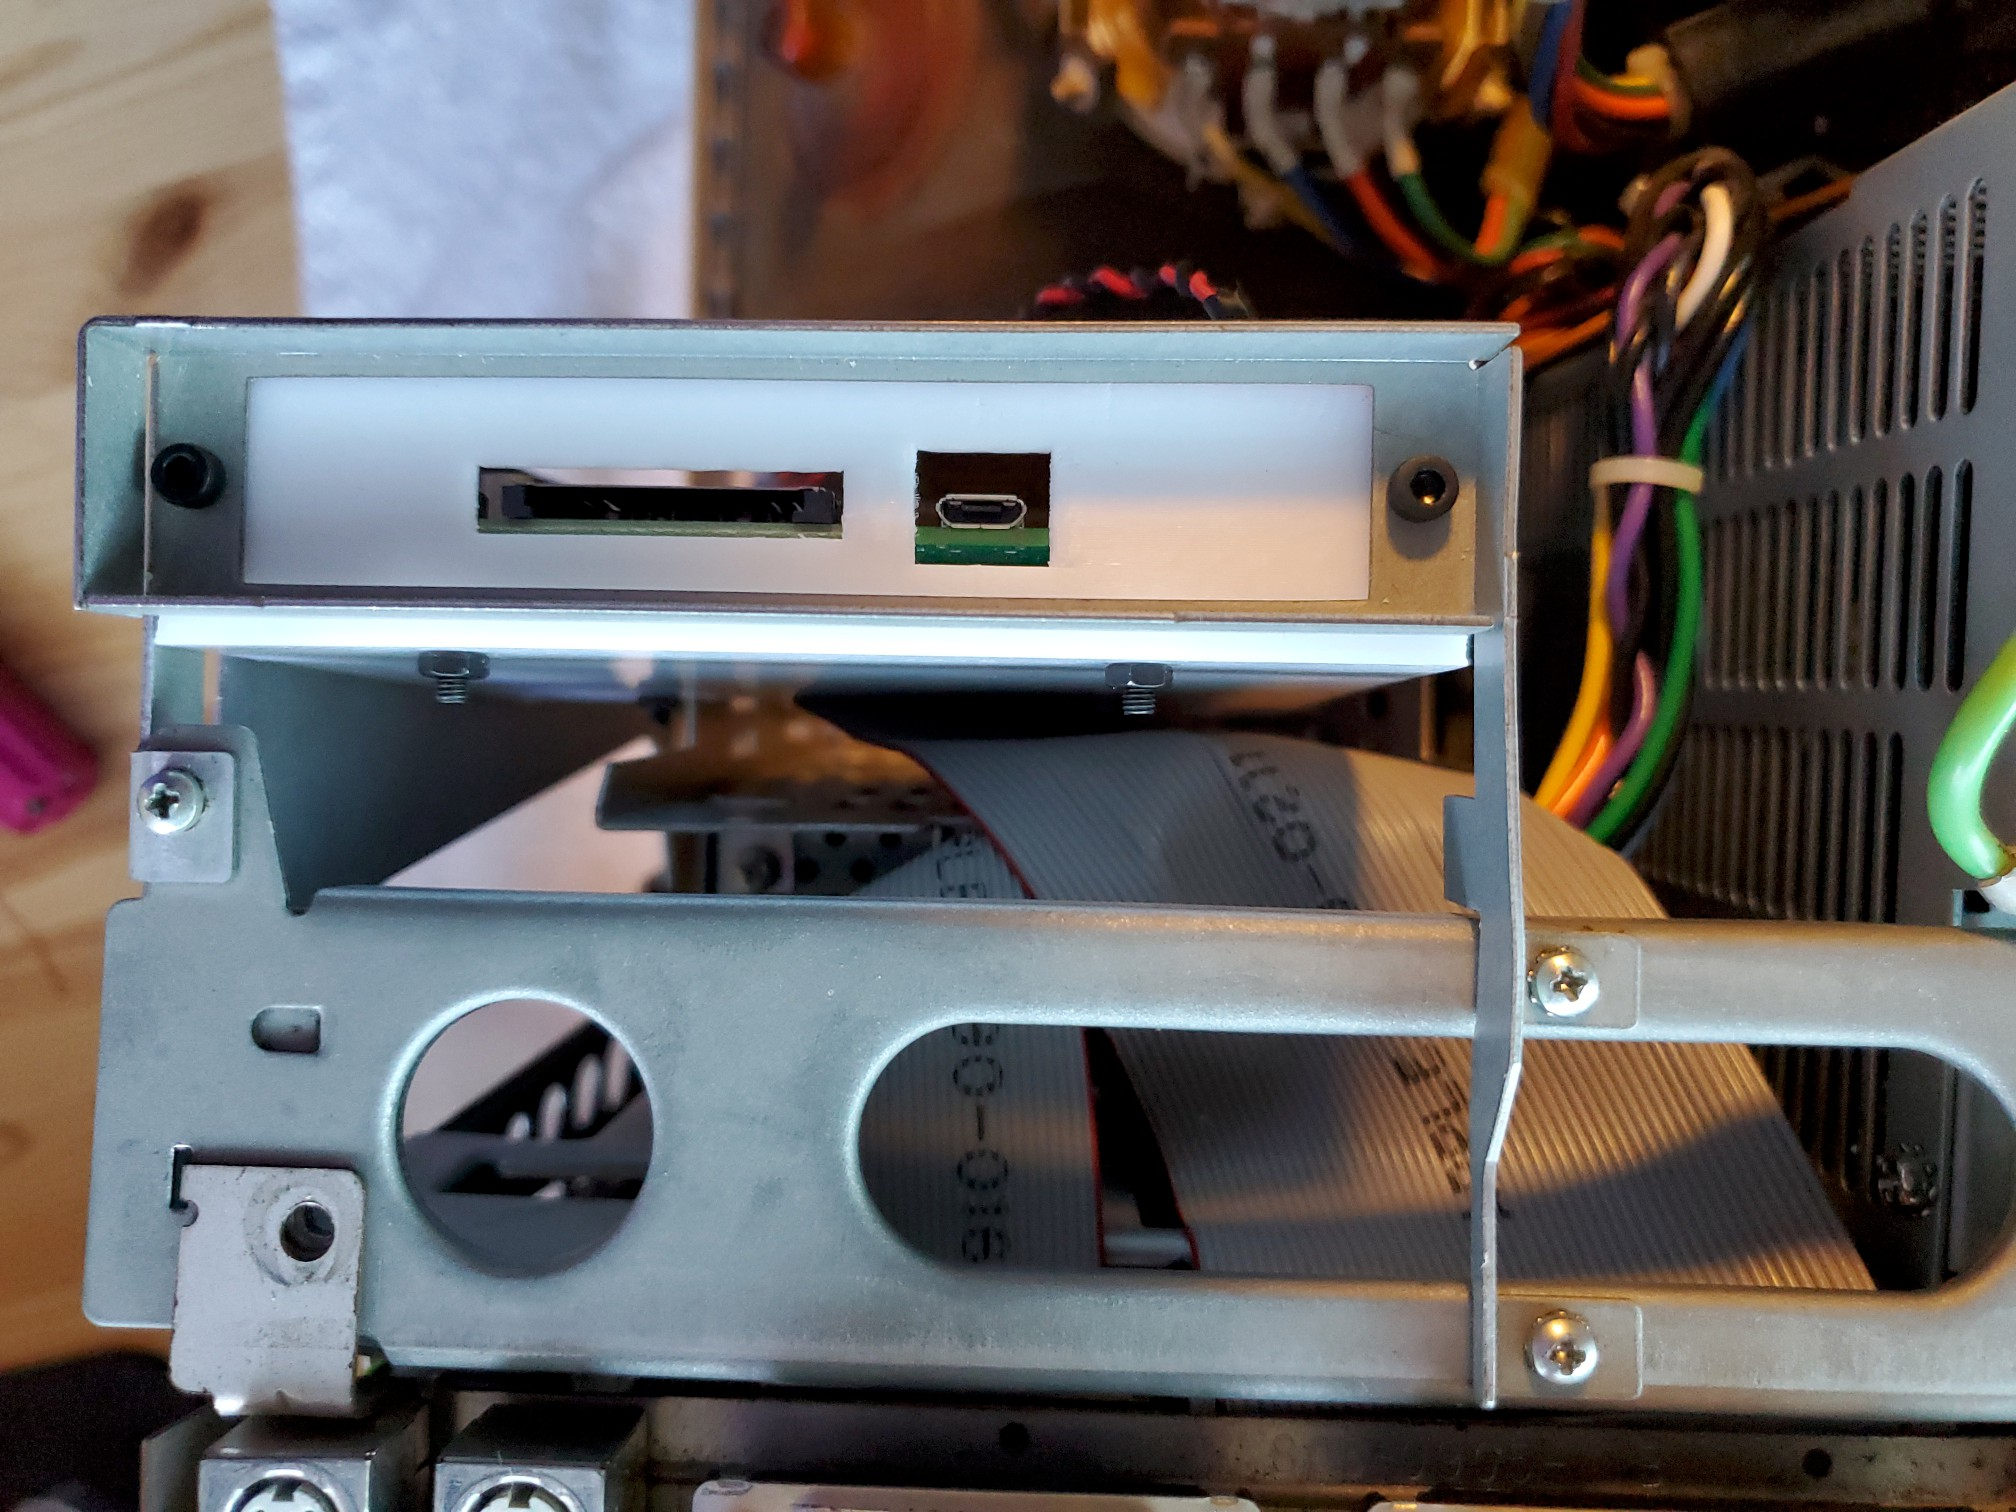 Mac SE/30 Rear with SCSI2SD Exposed